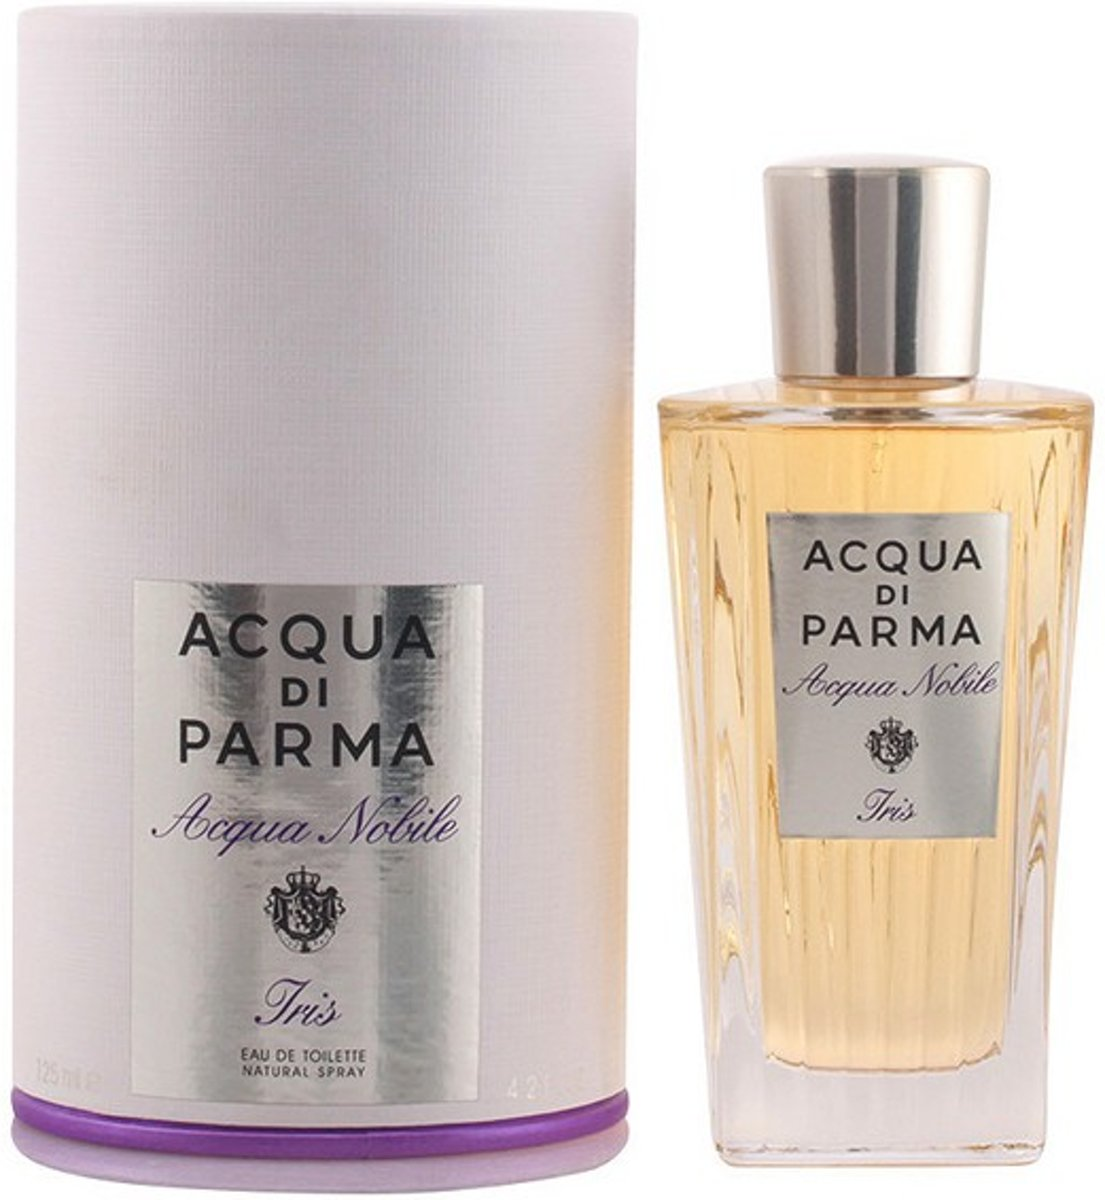 ACQUA NOBILE IRIS eau de toilette spray 75 ml